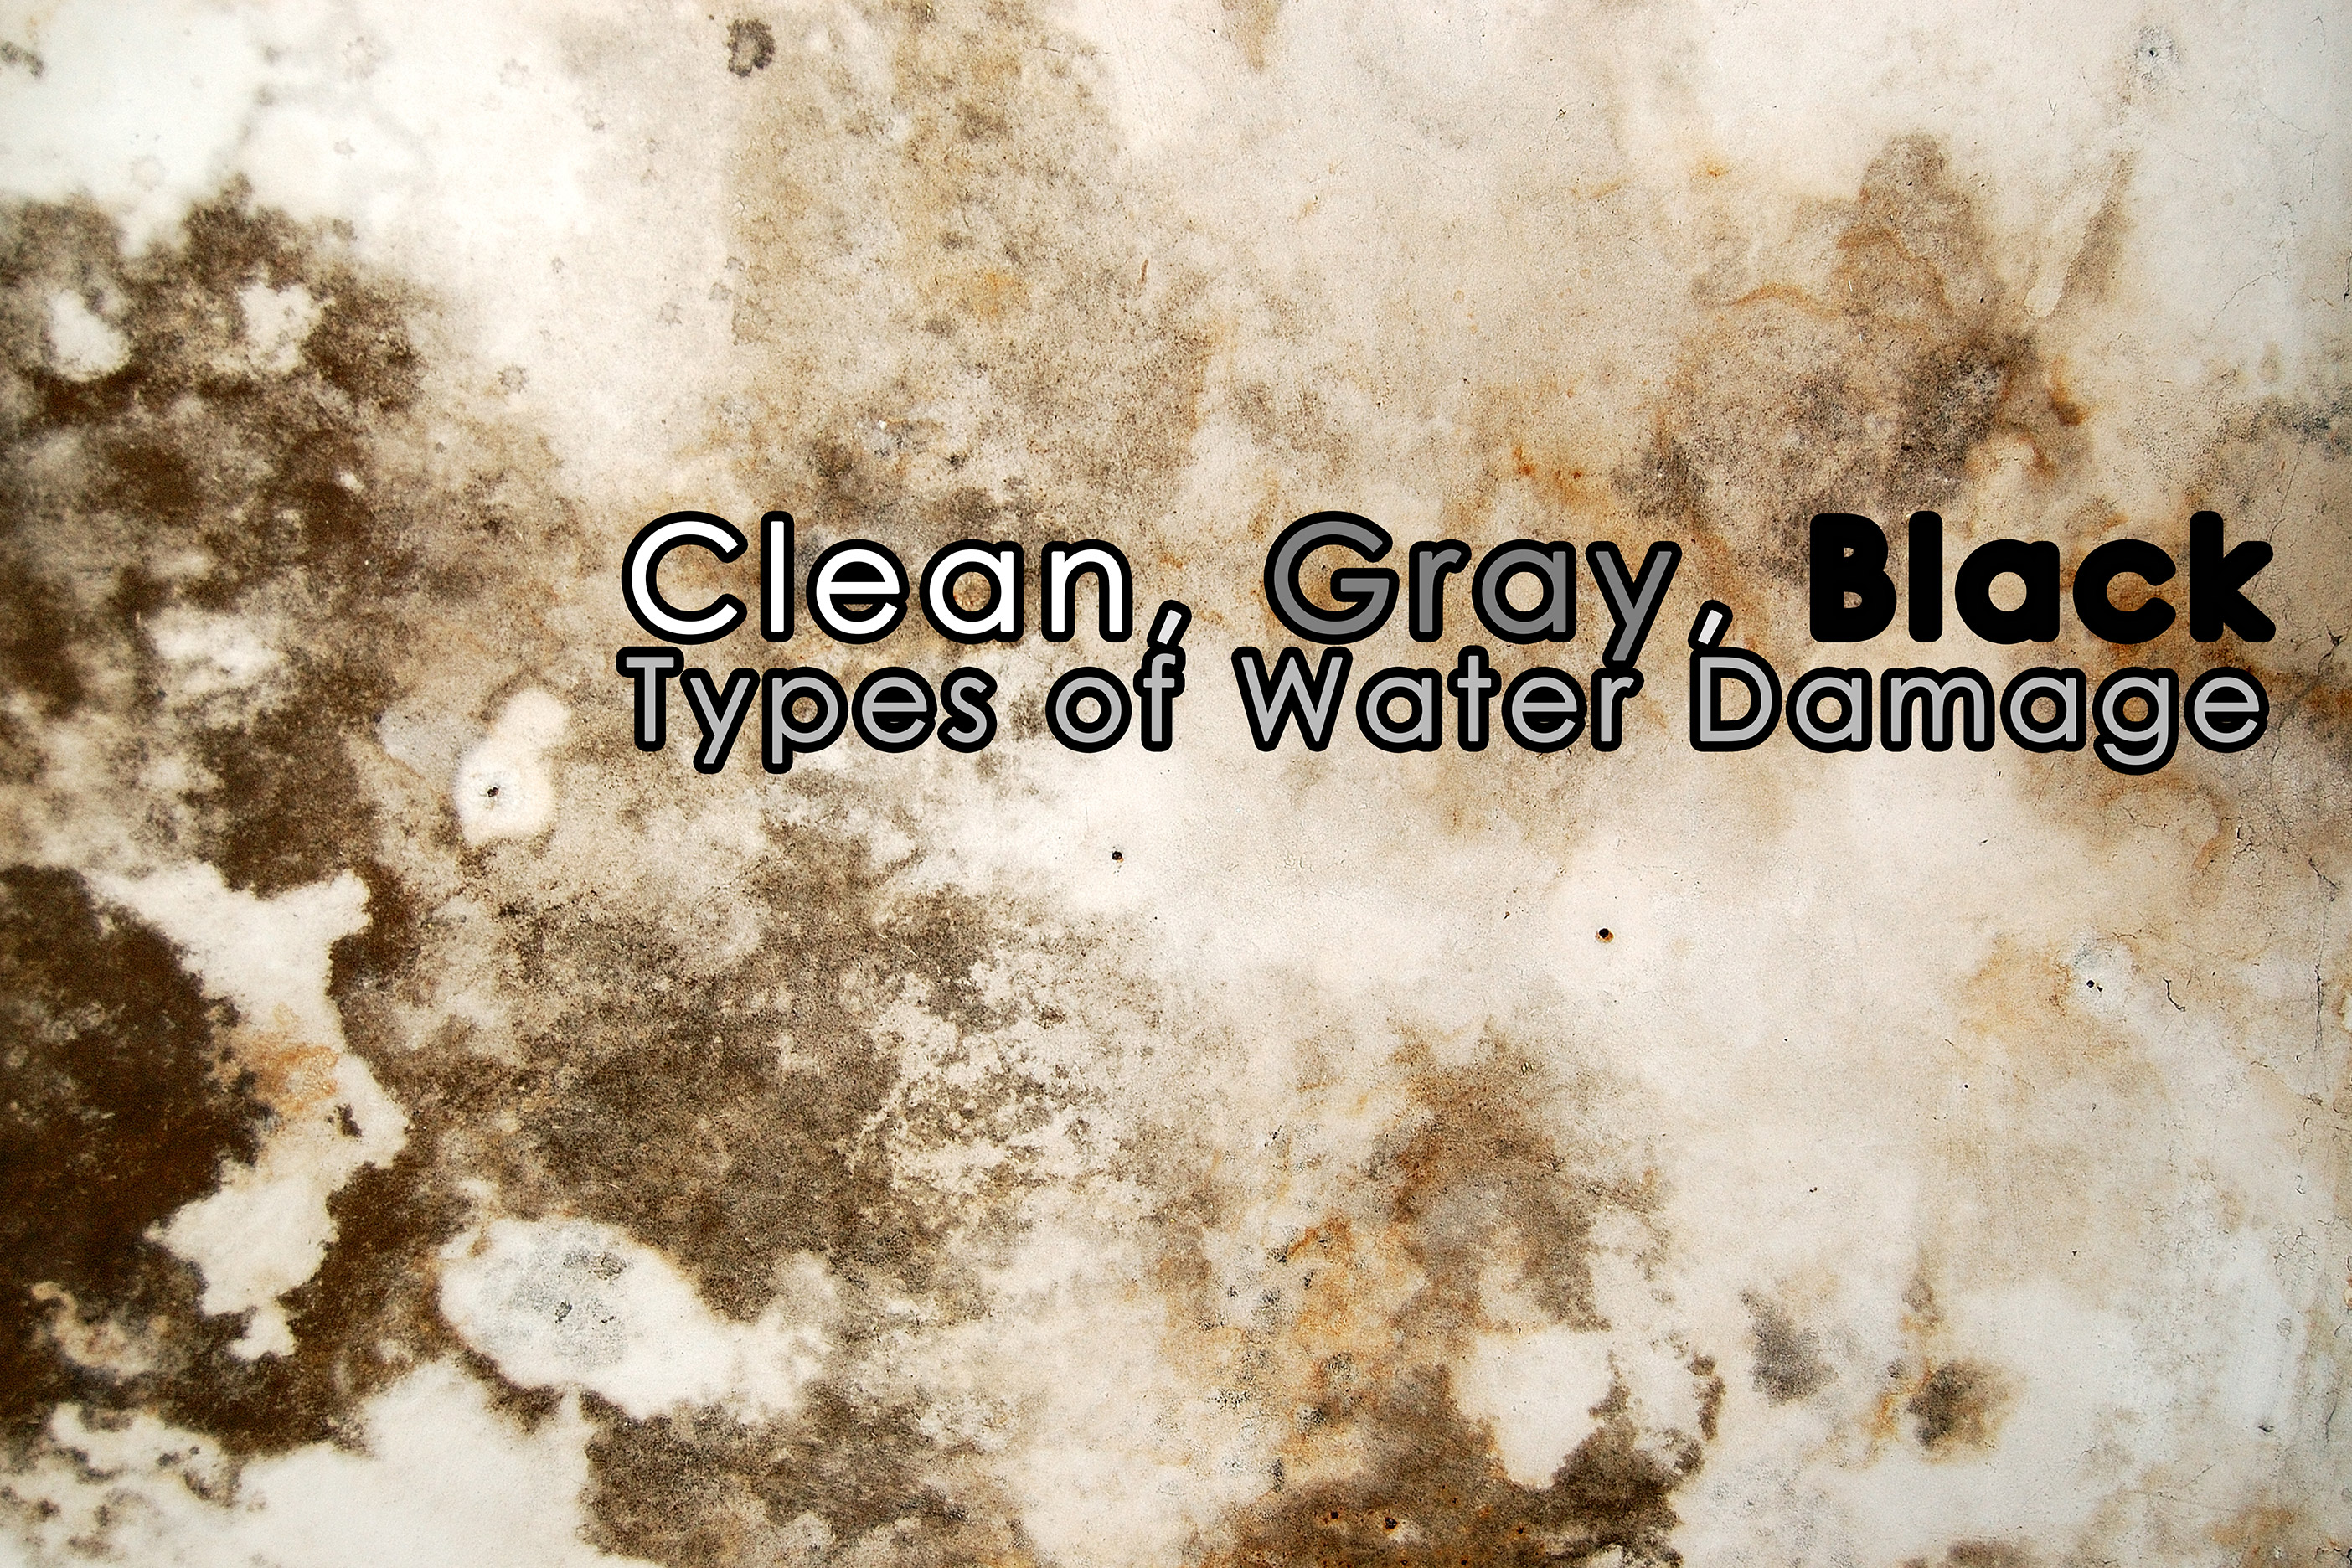 Clean, Gray, Black Types of Water Damage_